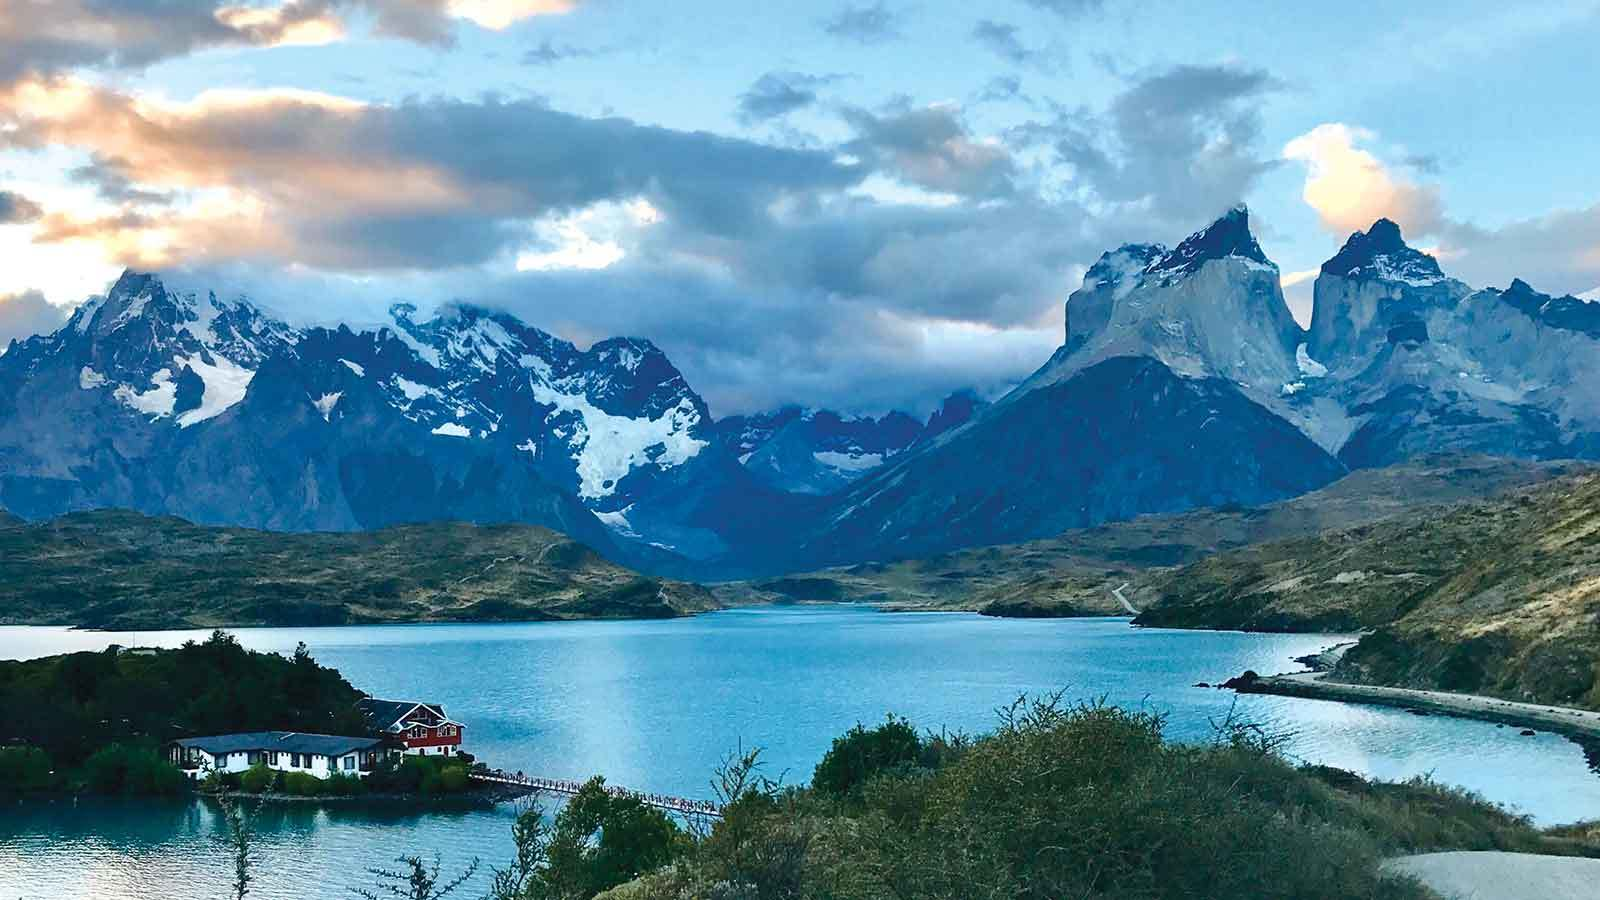 A lake and mountains in Chile